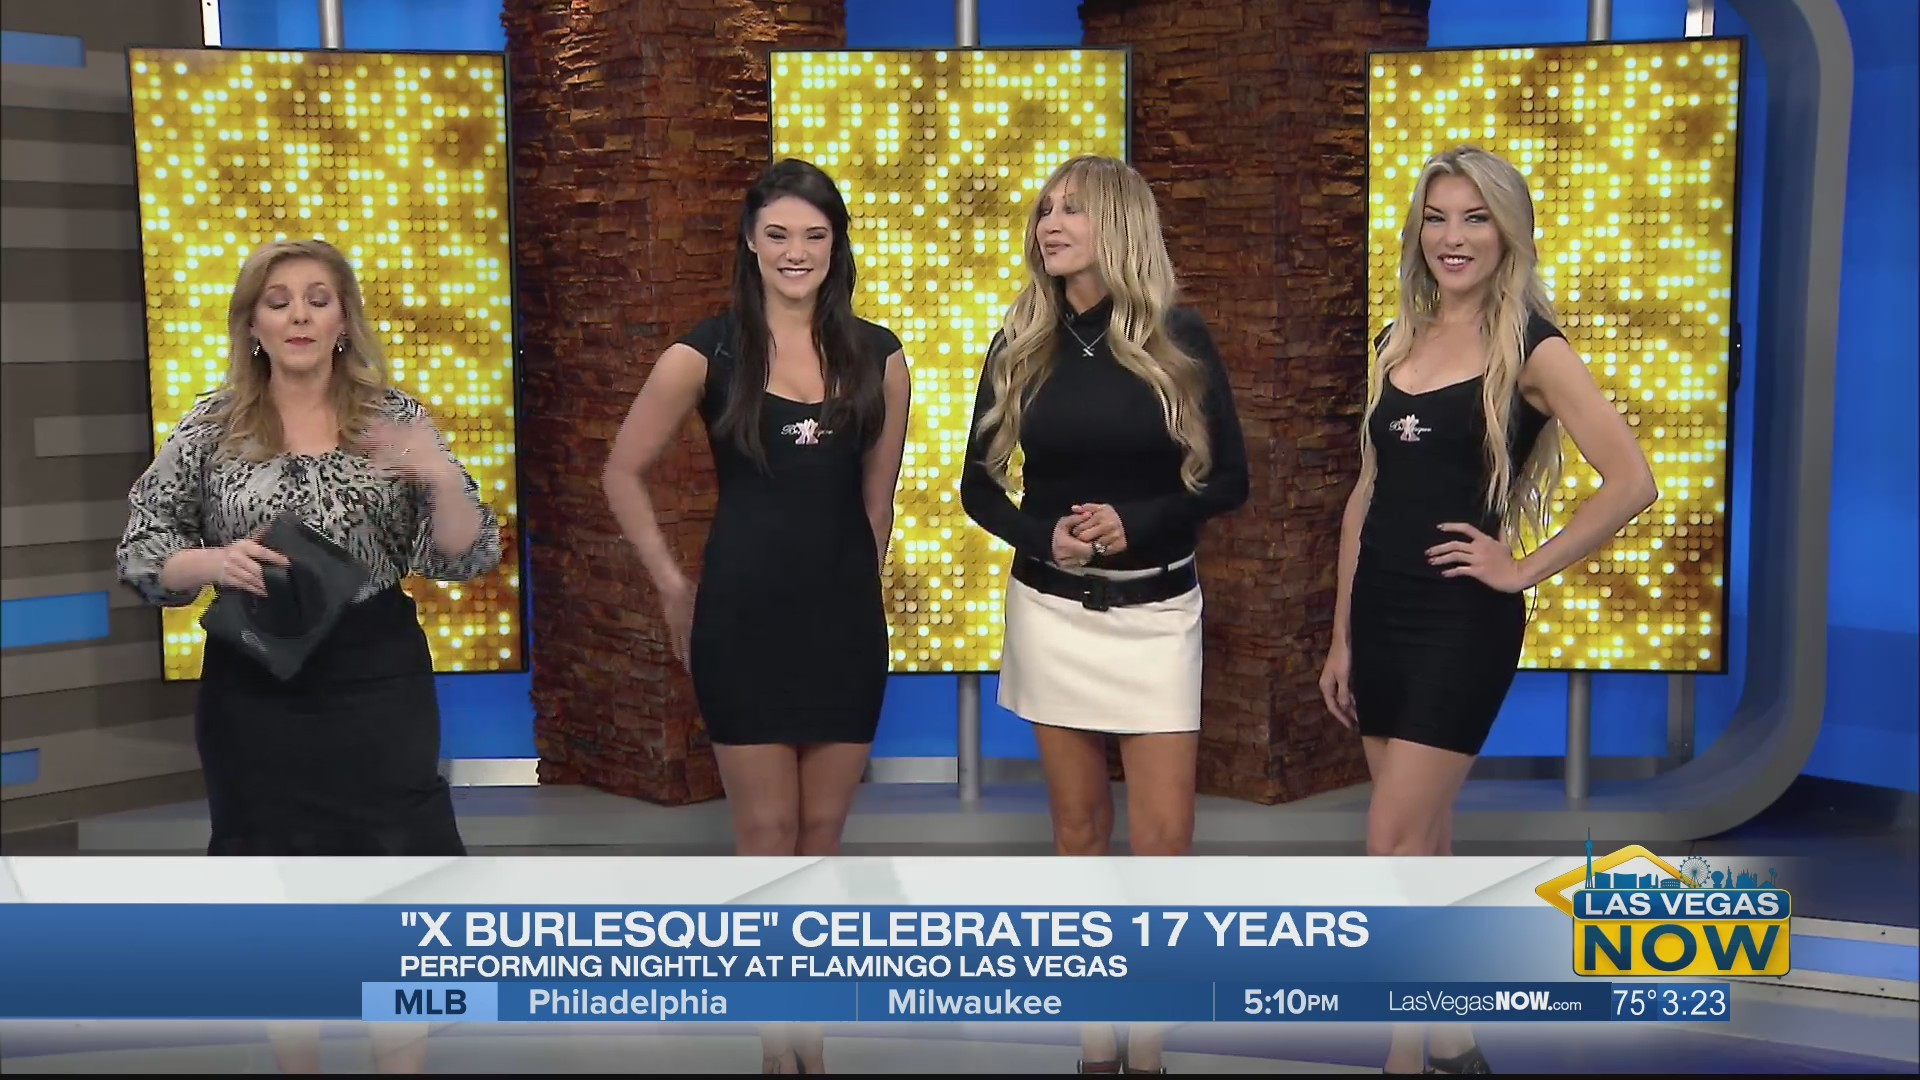 X Burlesque is celebrating their 17th anniversary